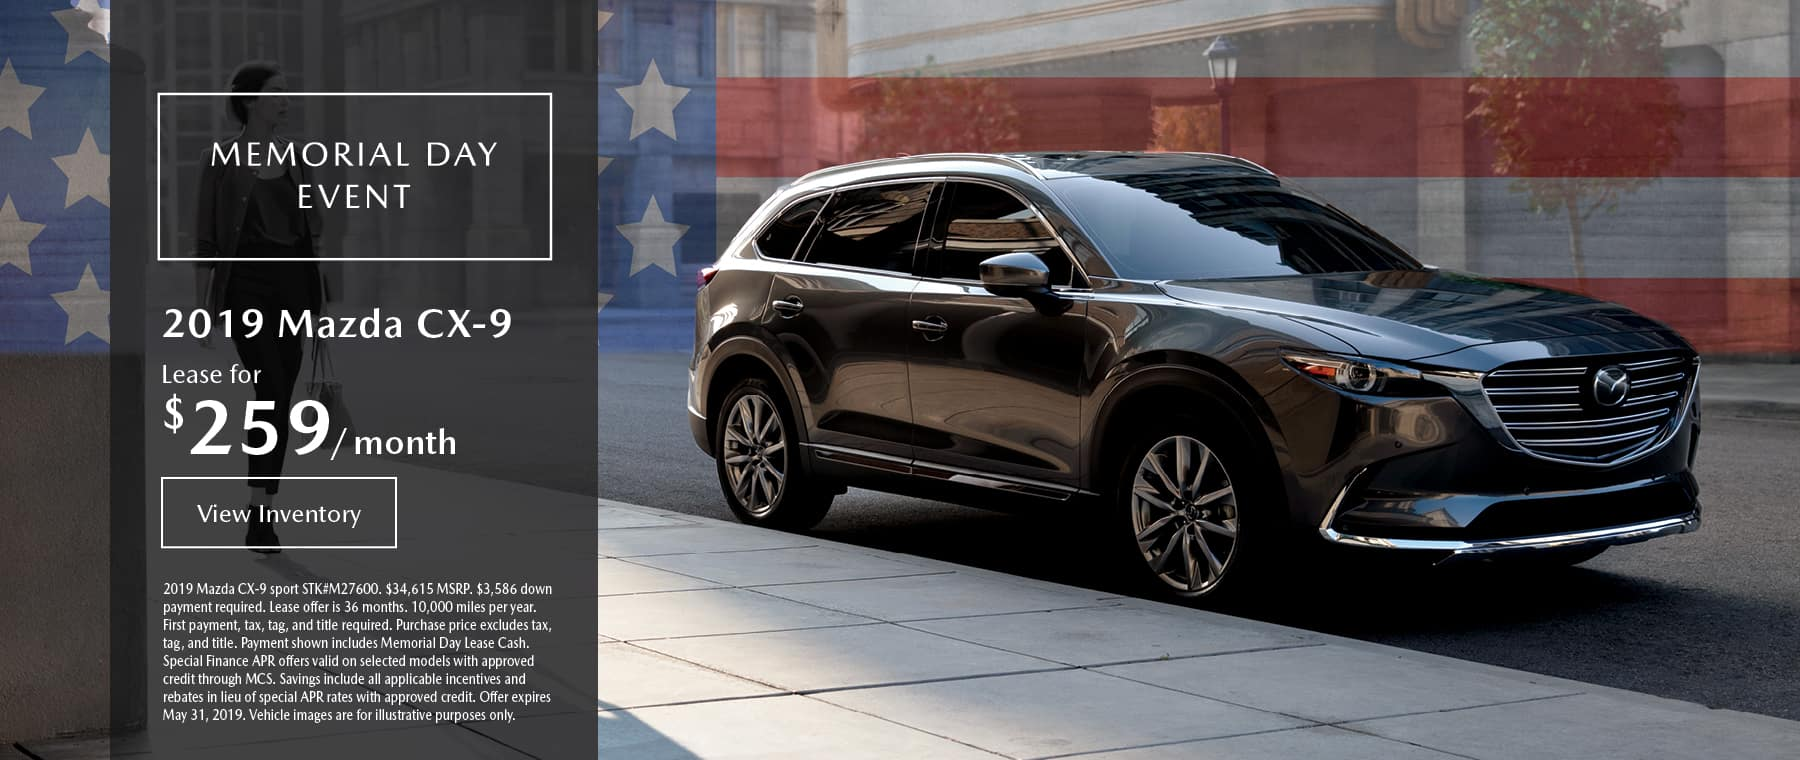 Lease the 2019 Mazda CX-9 for $259 per month, plus tax